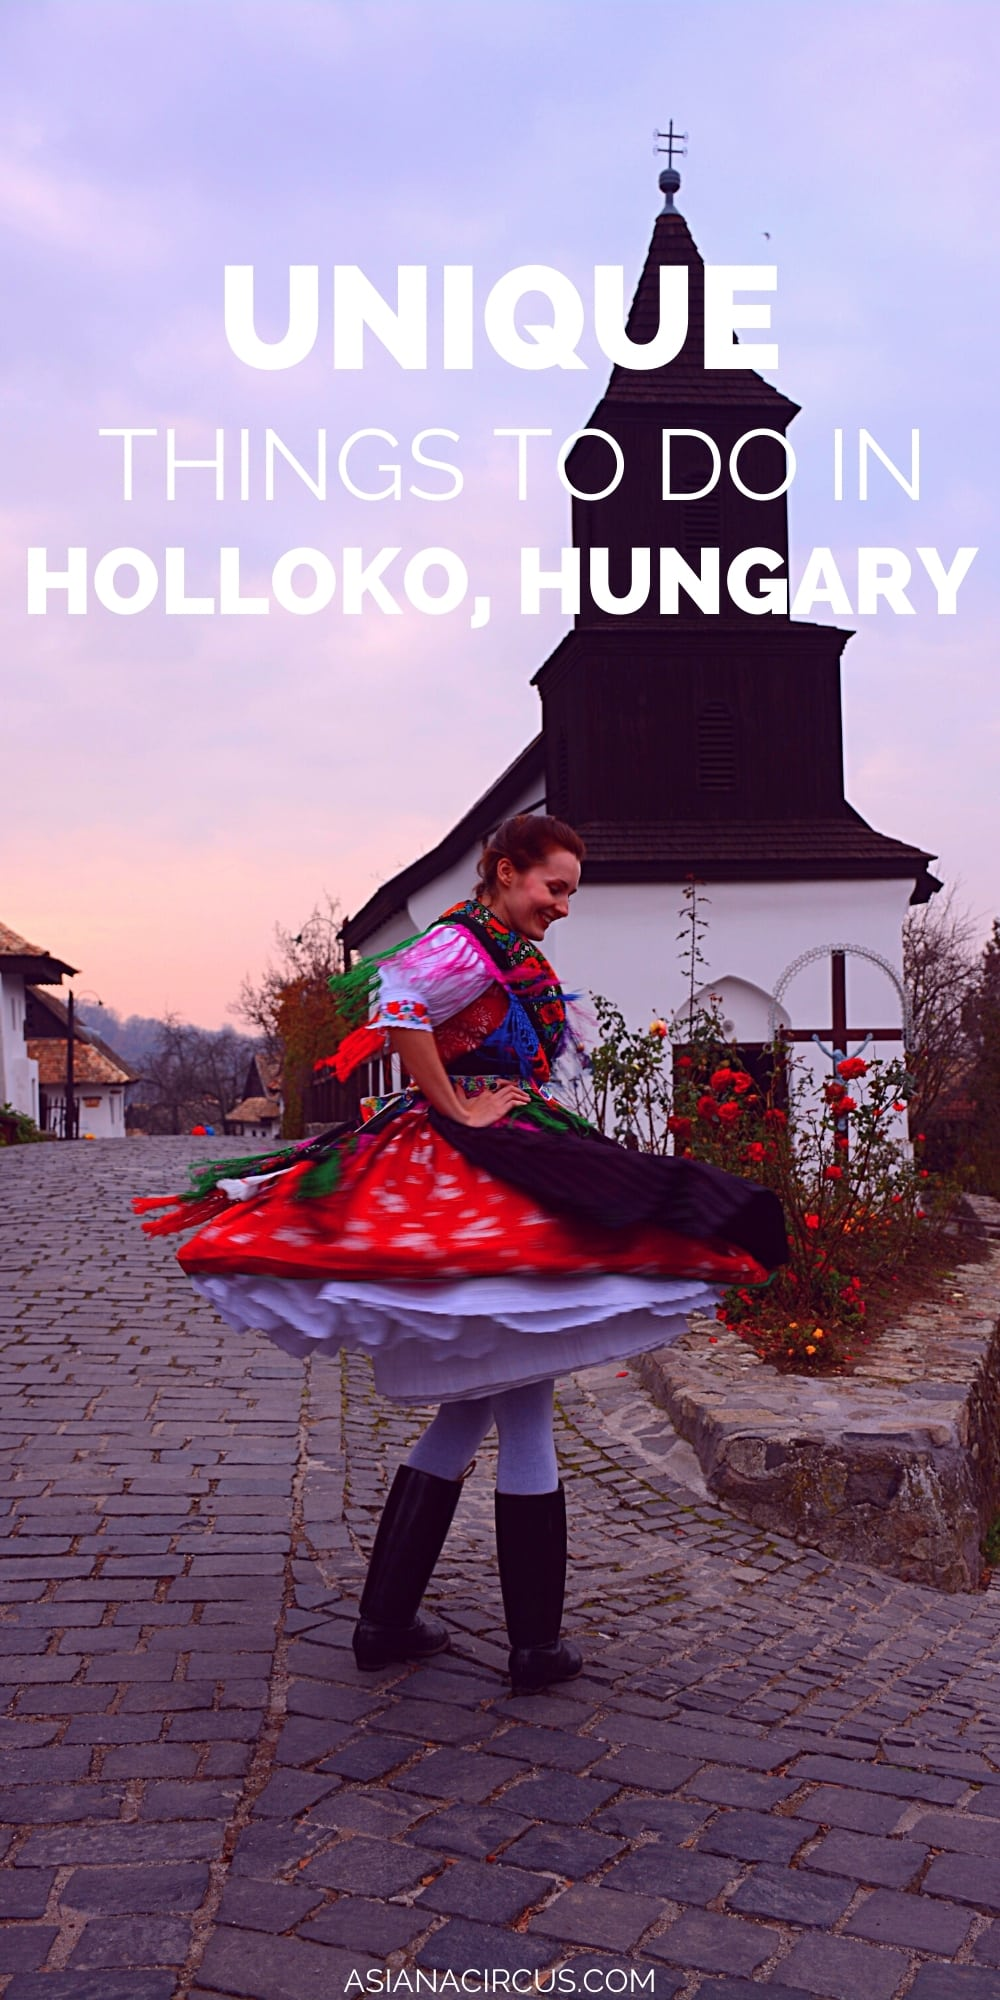 Best things to do in Holloko, hungary (1)